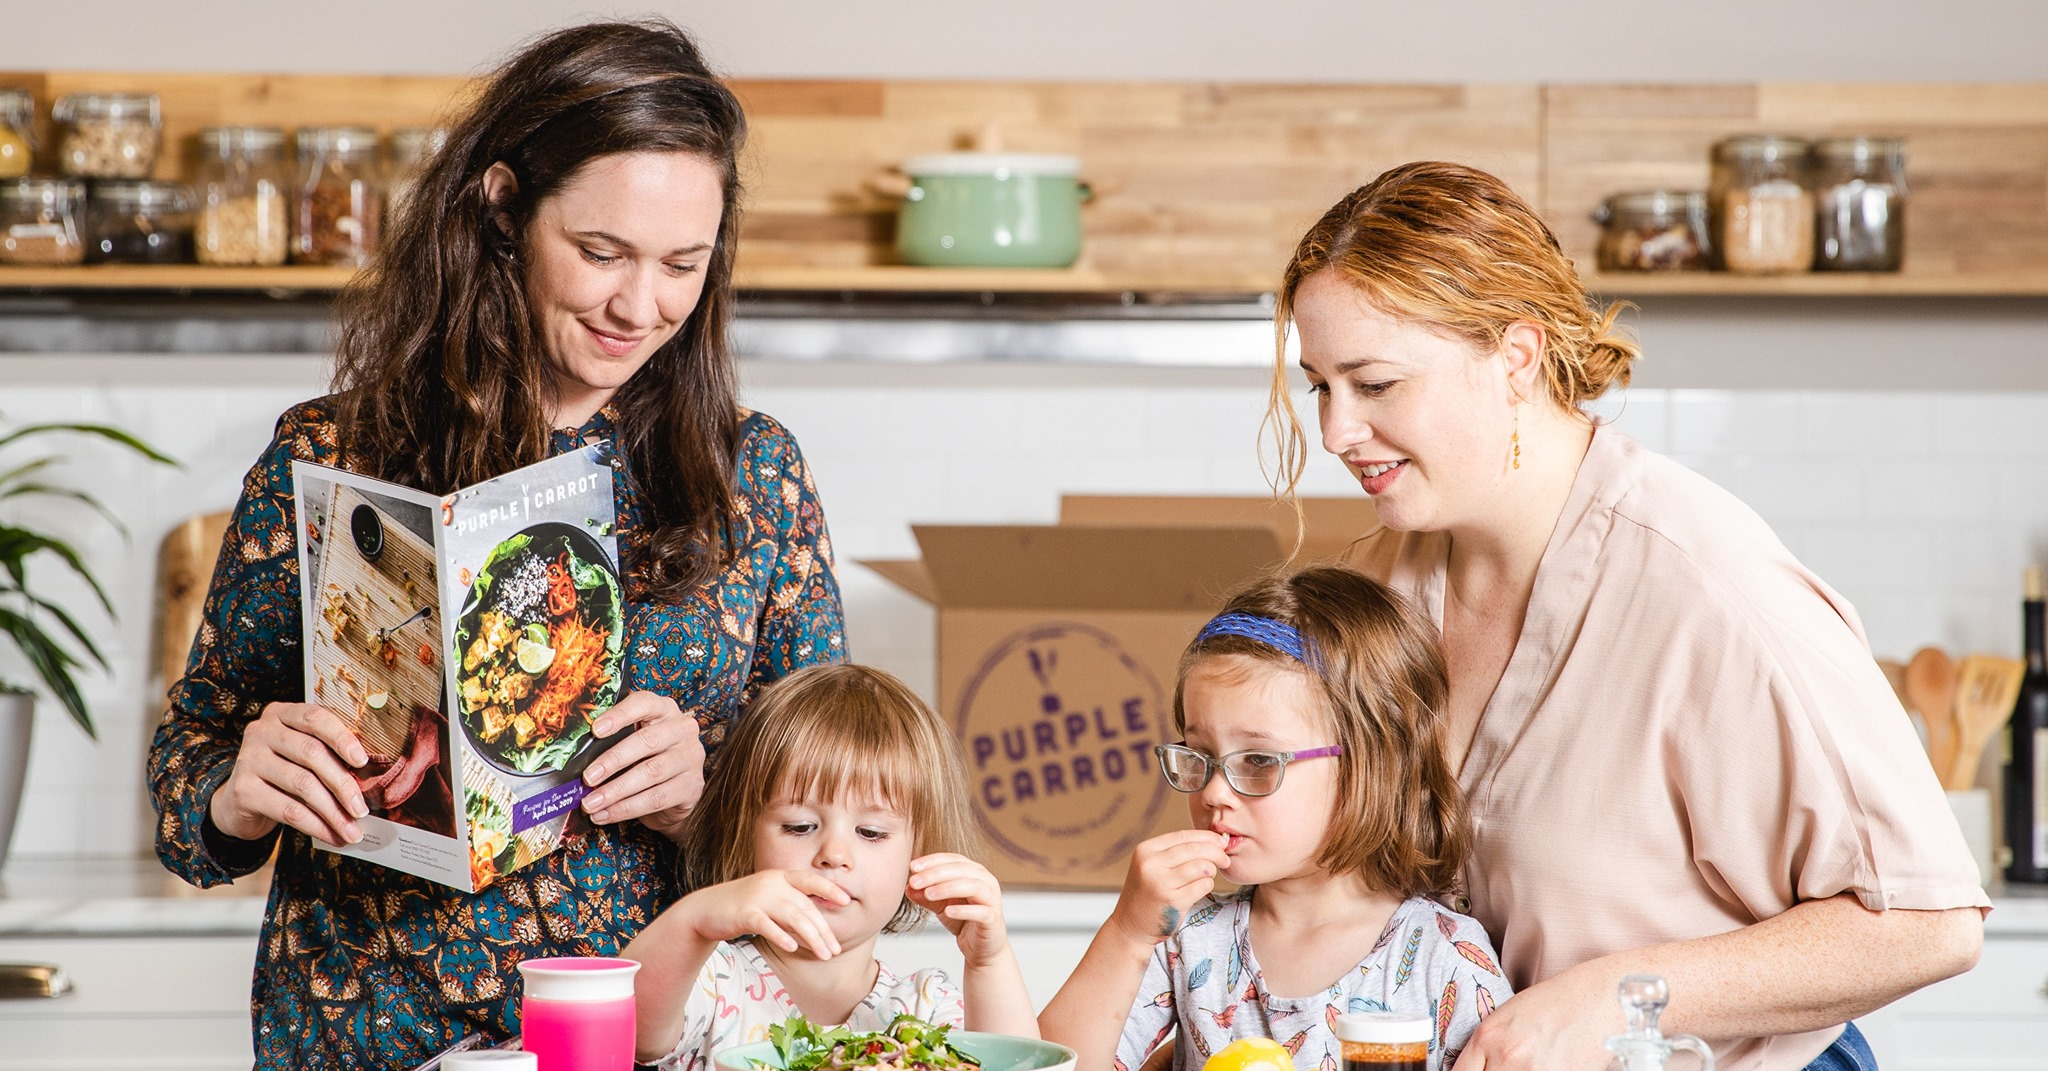 Tokyo-based meal kit company acquires Purple Carrot